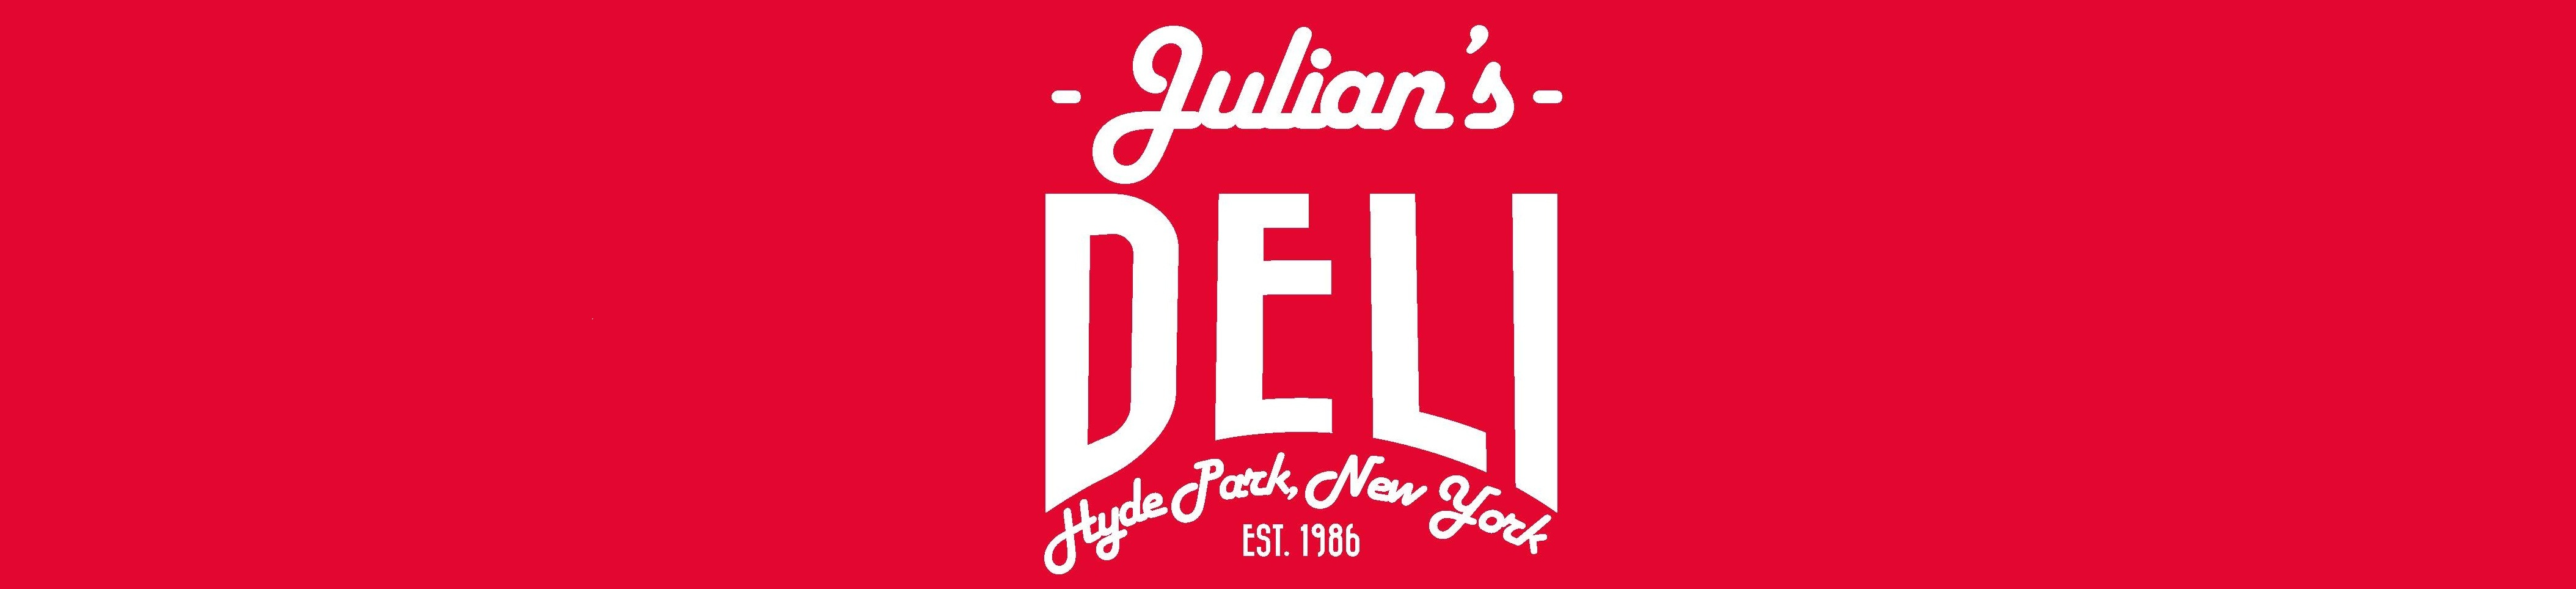 Julians-Deli-Logo-4-wide